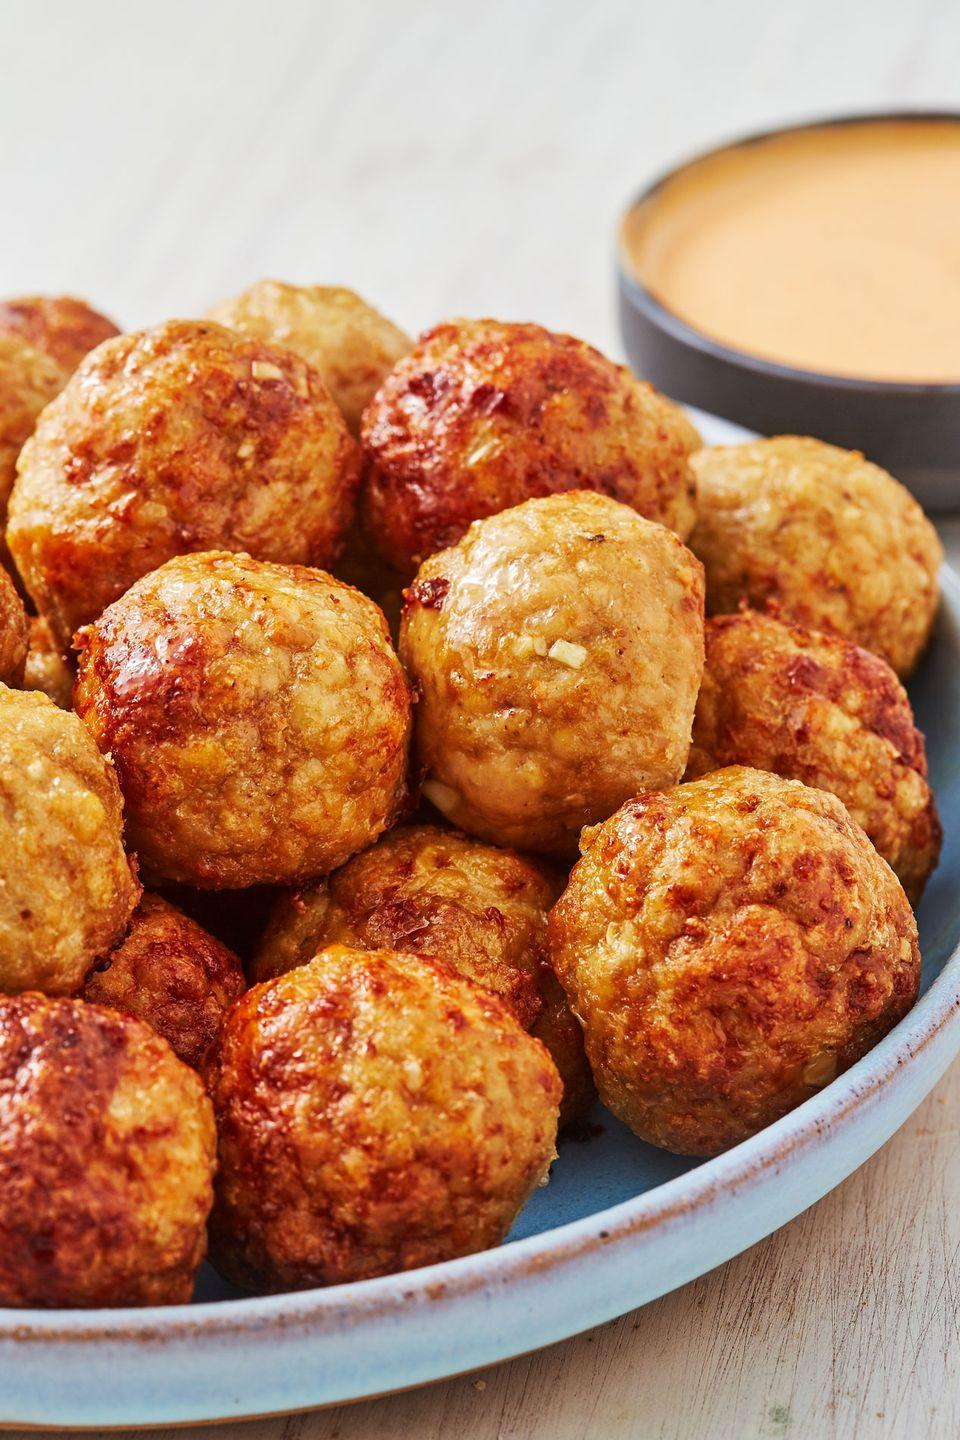 "<p>These easy meatballs can be made in the oven or air fryer. With a sweet a spicy mayo, these are perfectly shareable. </p><p>Get the recipe from <a href=""https://www.delish.com/cooking/recipe-ideas/a28580825/baked-chicken-meatball-recipe/"" rel=""nofollow noopener"" target=""_blank"" data-ylk=""slk:Delish"" class=""link rapid-noclick-resp"">Delish</a>.</p>"